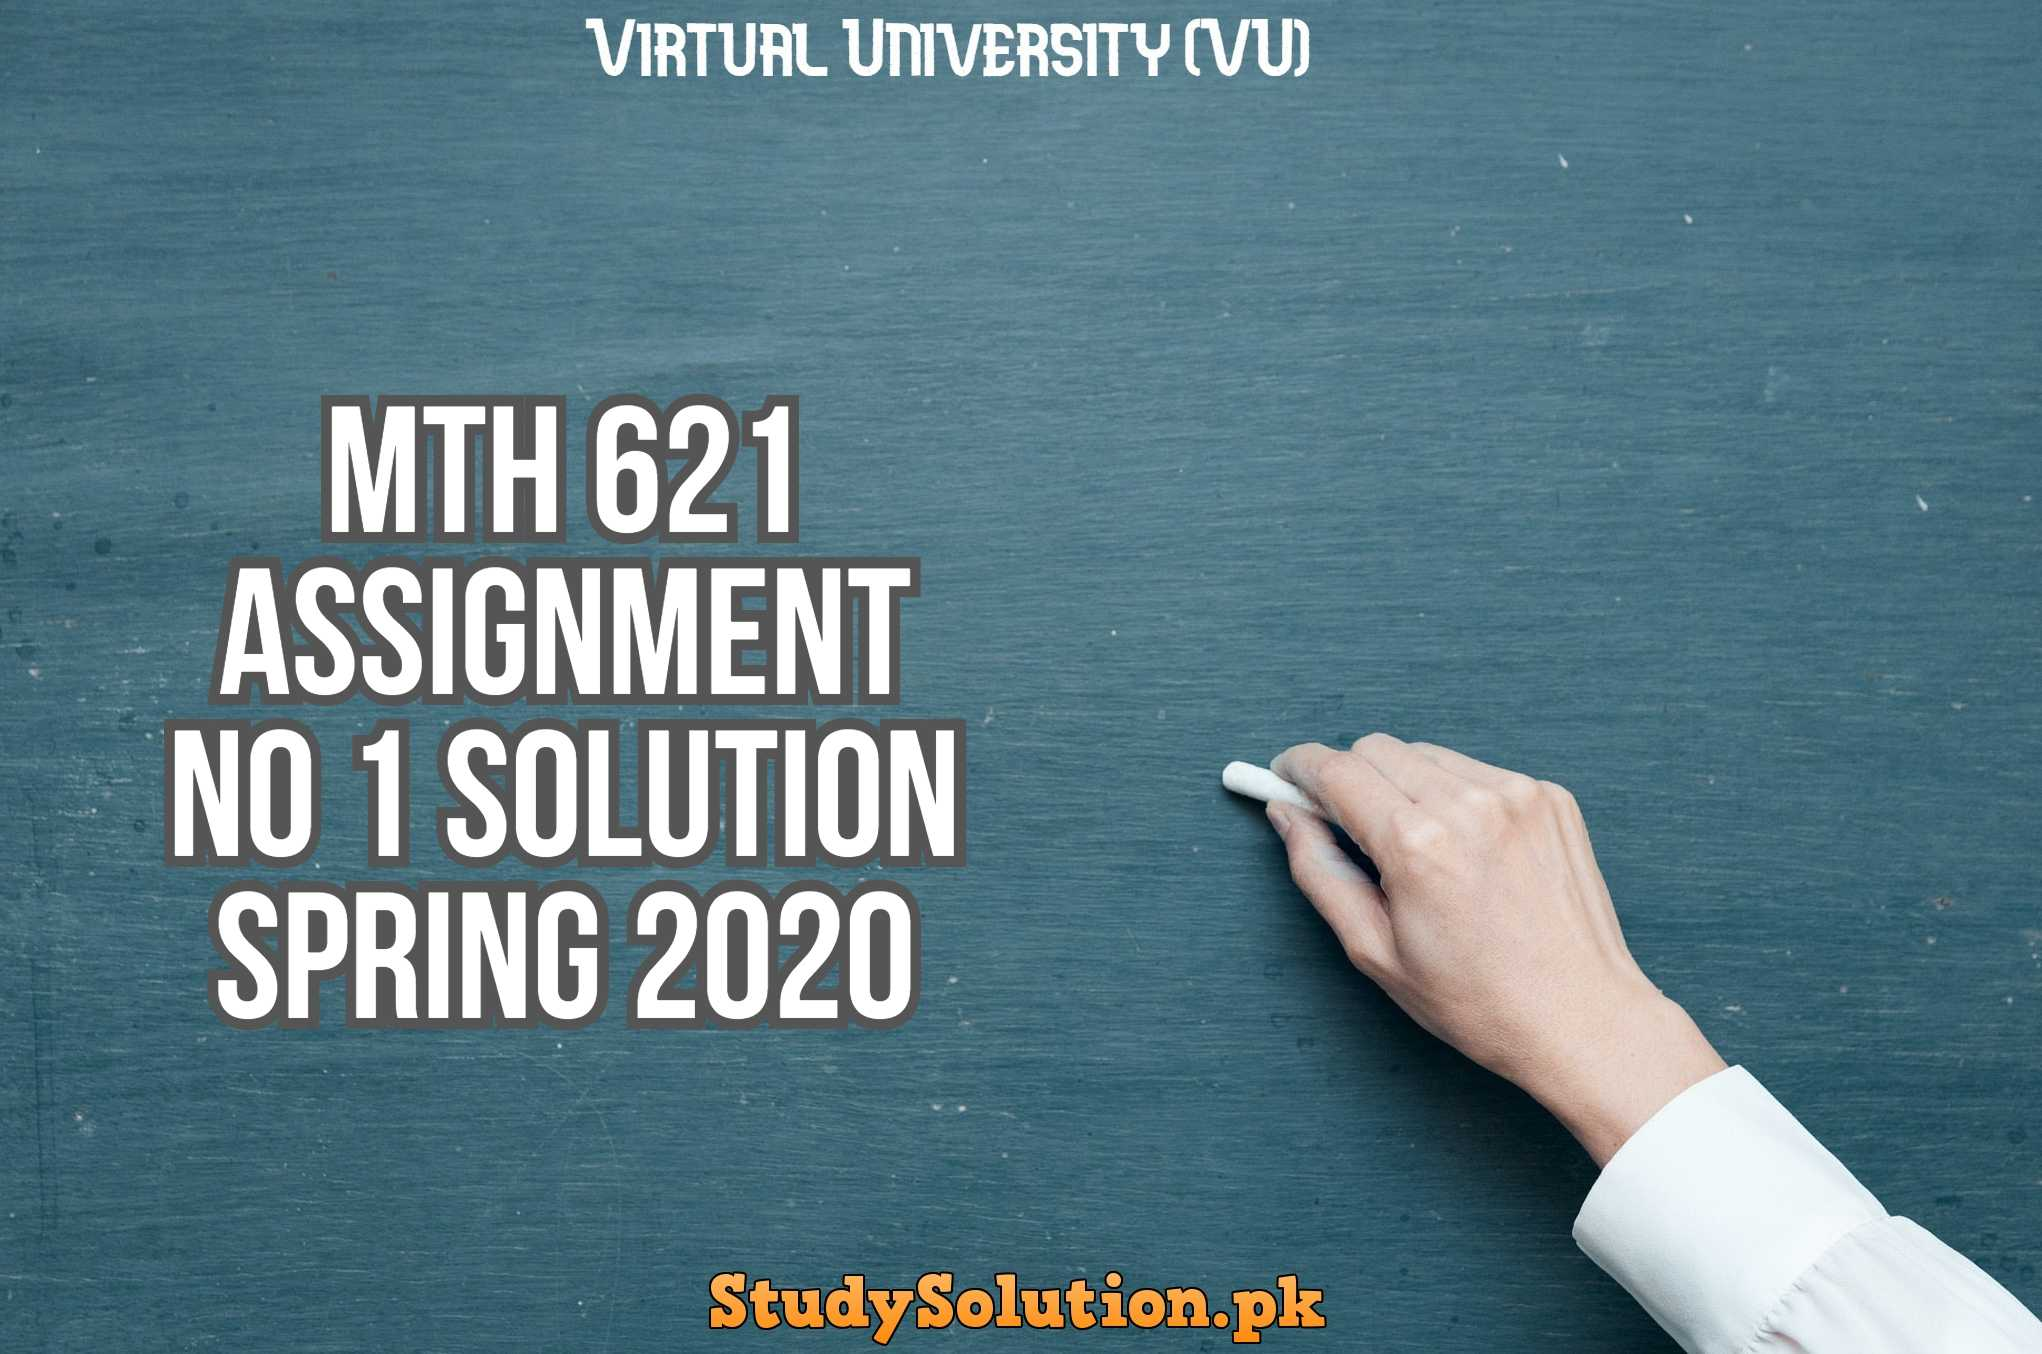 MTH 621 Assignment No 1 Solution Spring 2020